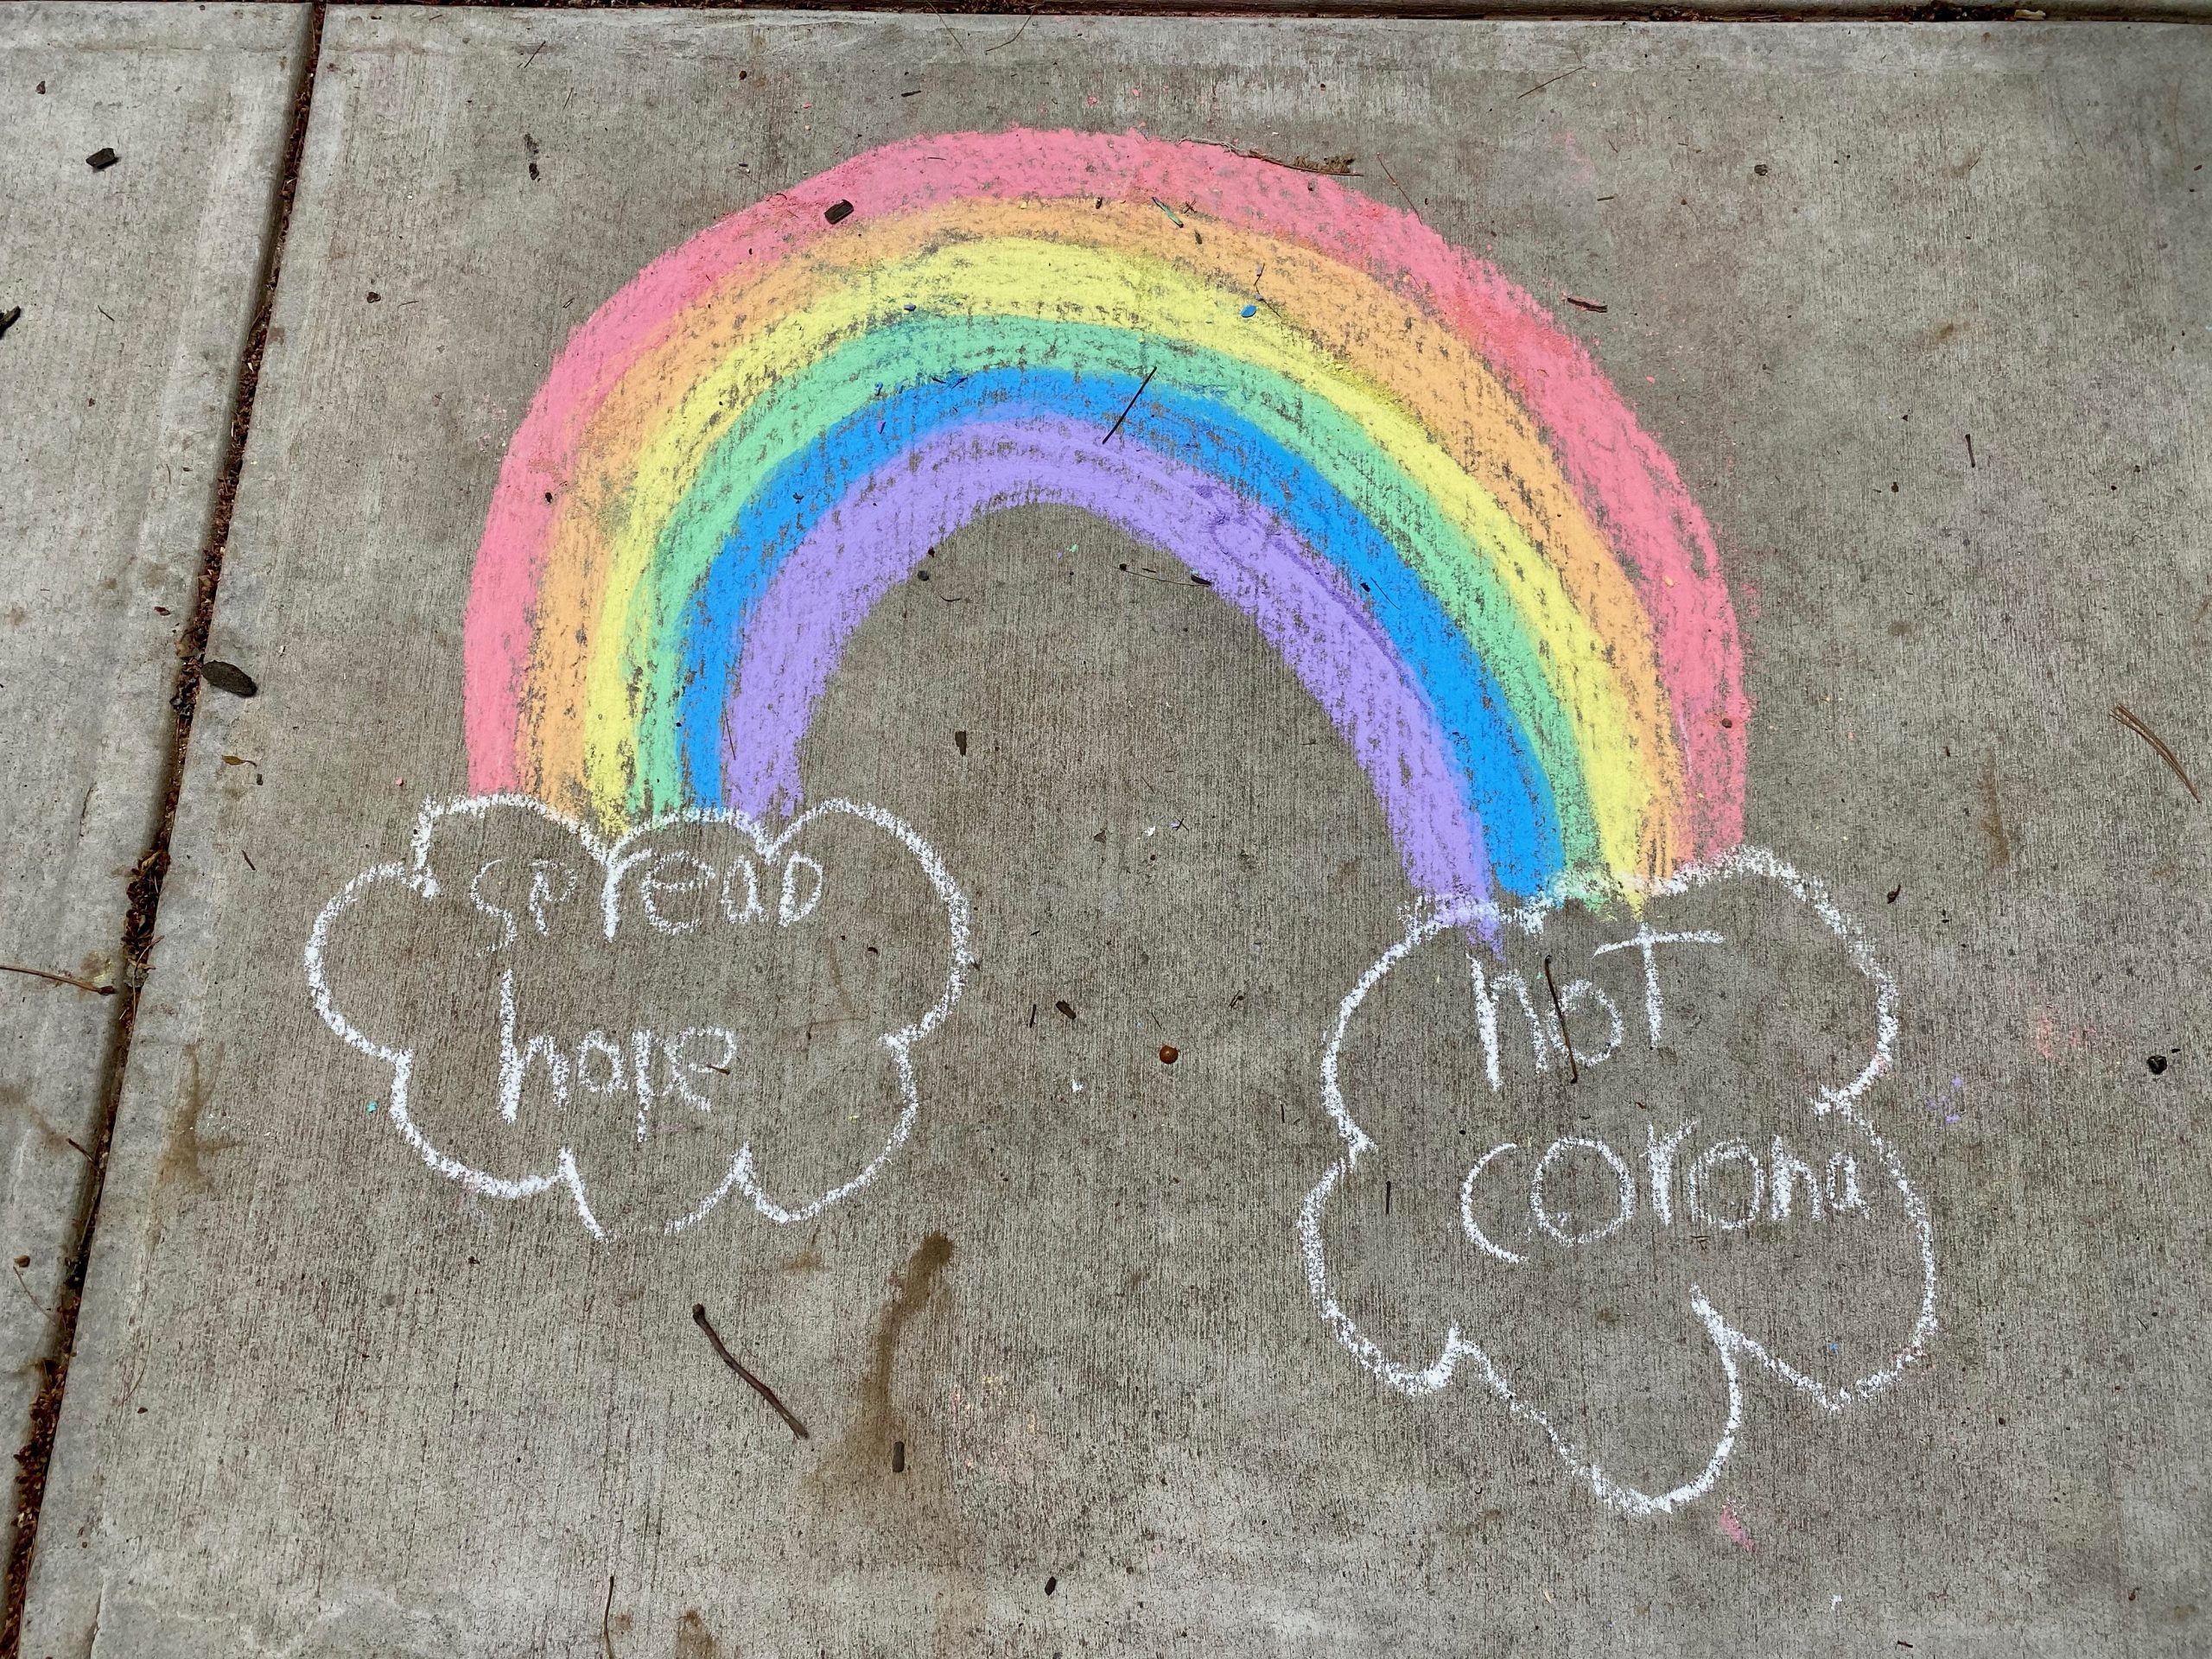 """Image of rainbow with clouds that read """"Spread Hope, Not Corona"""""""